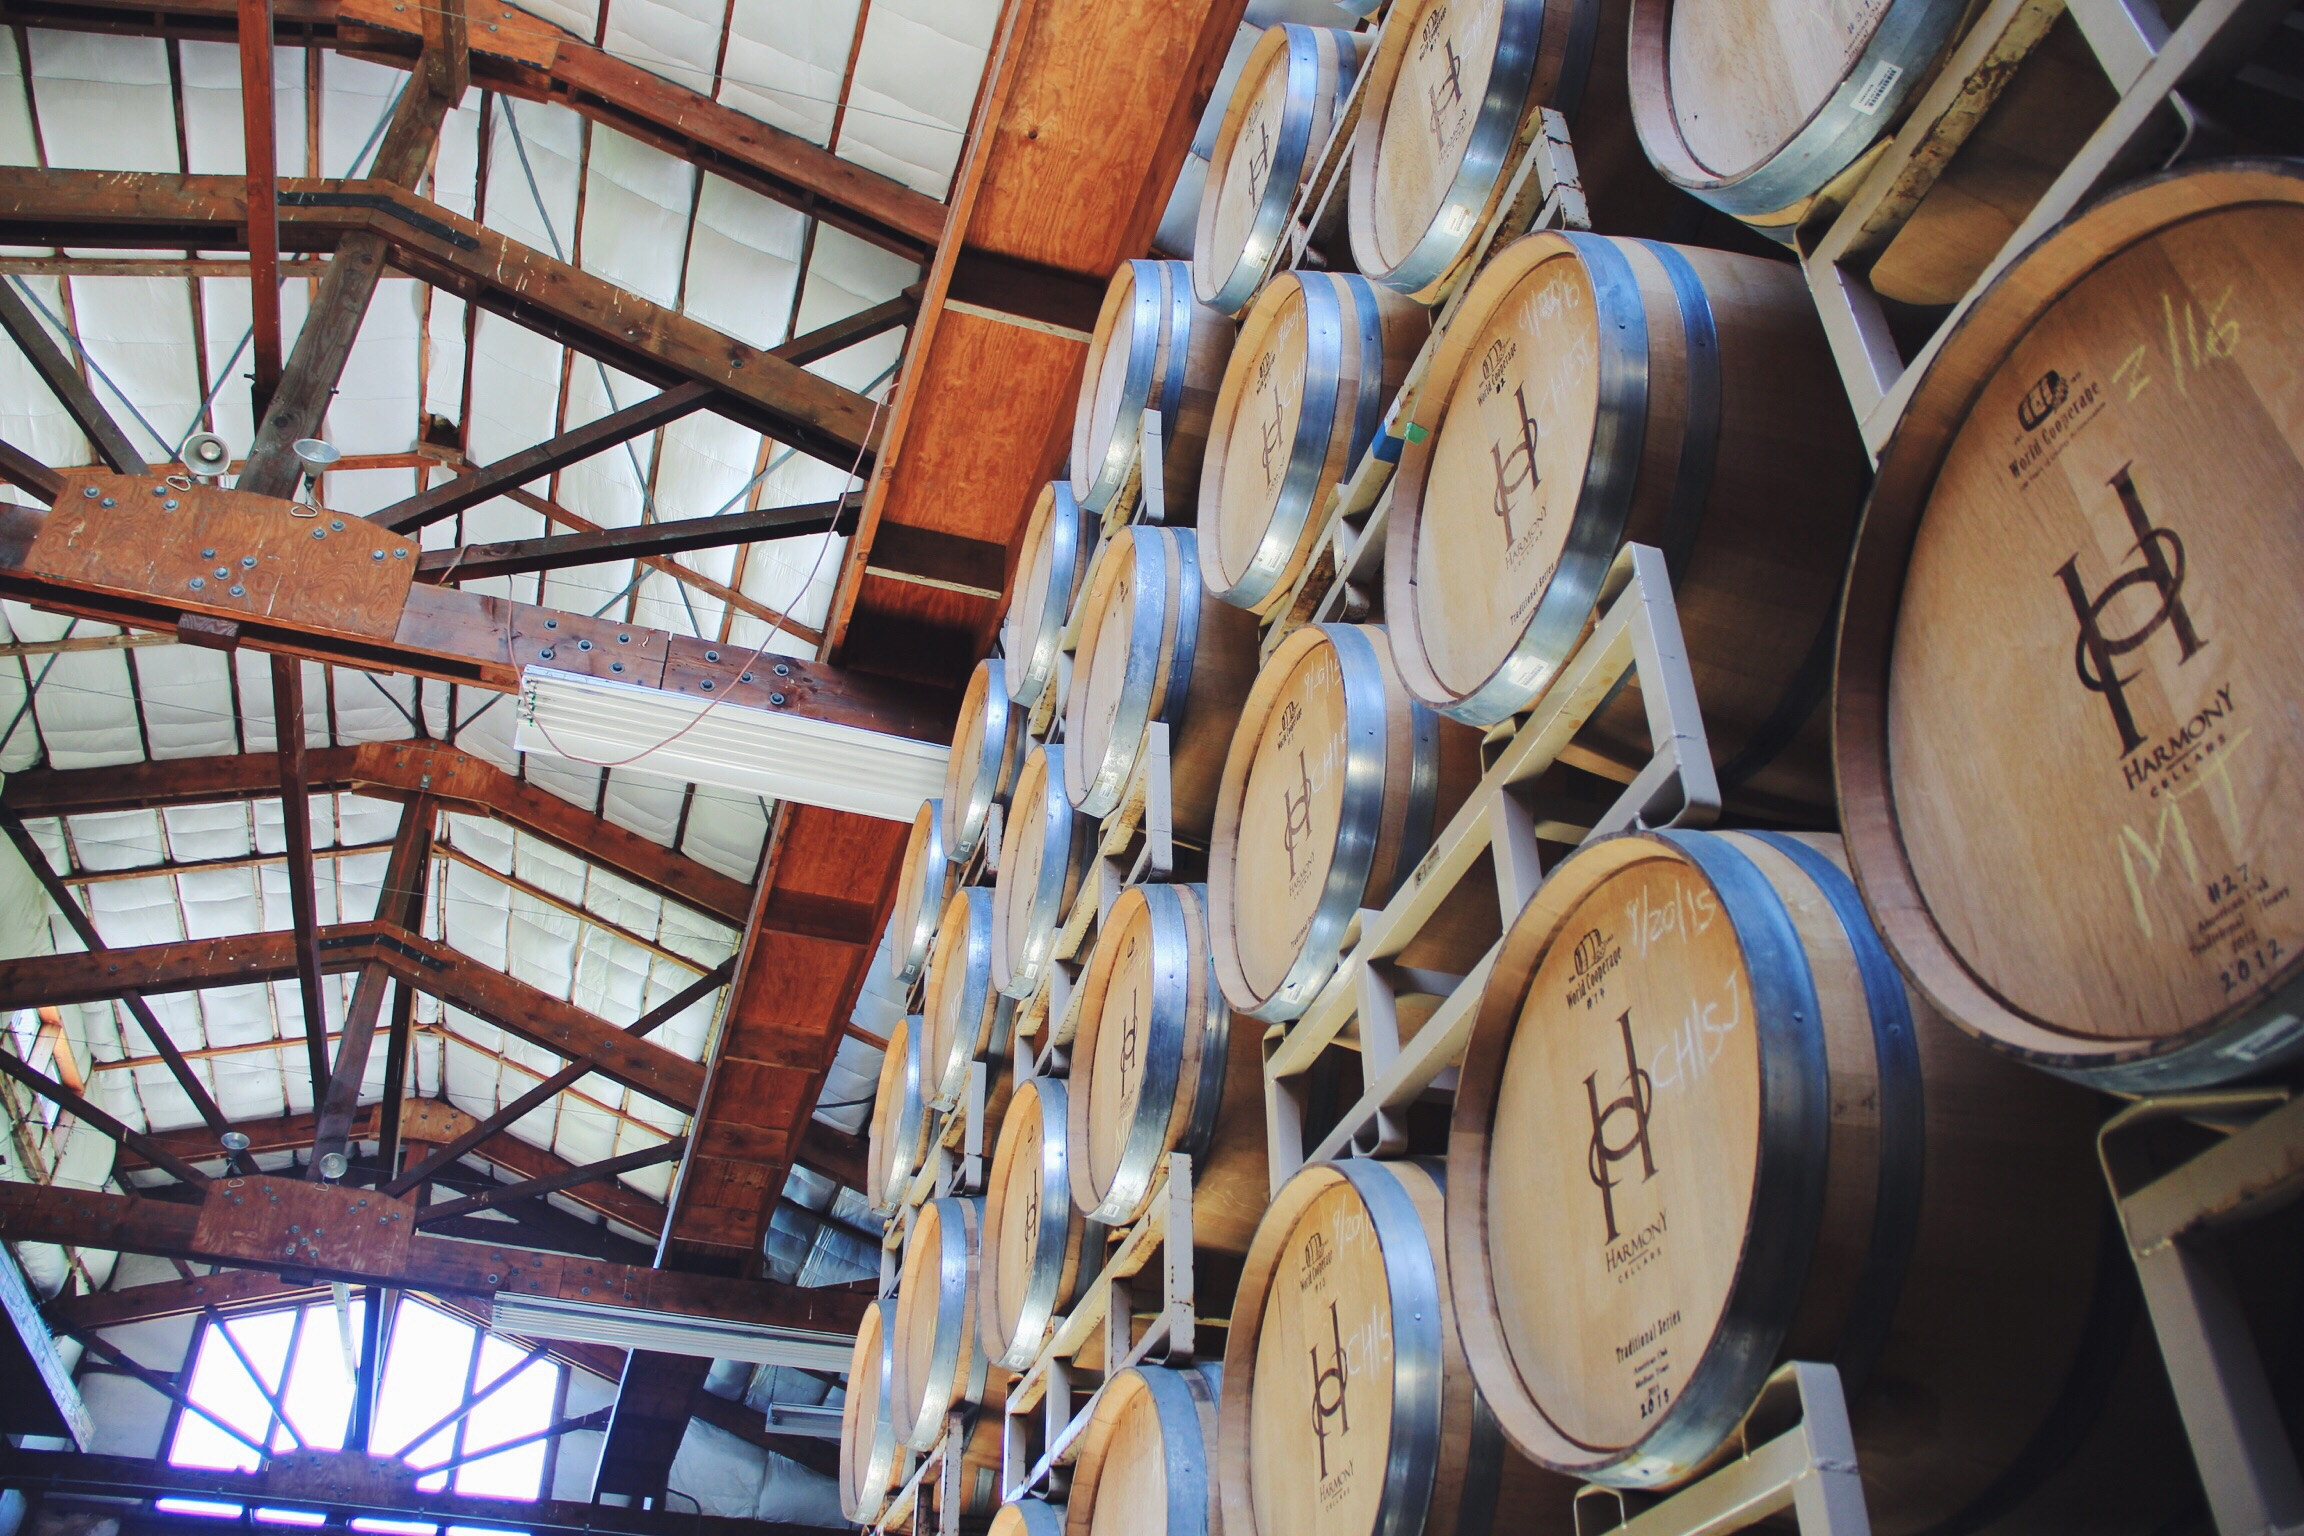 Private tour at Harmony Vineyards in Harmony, CA outside of Cambria